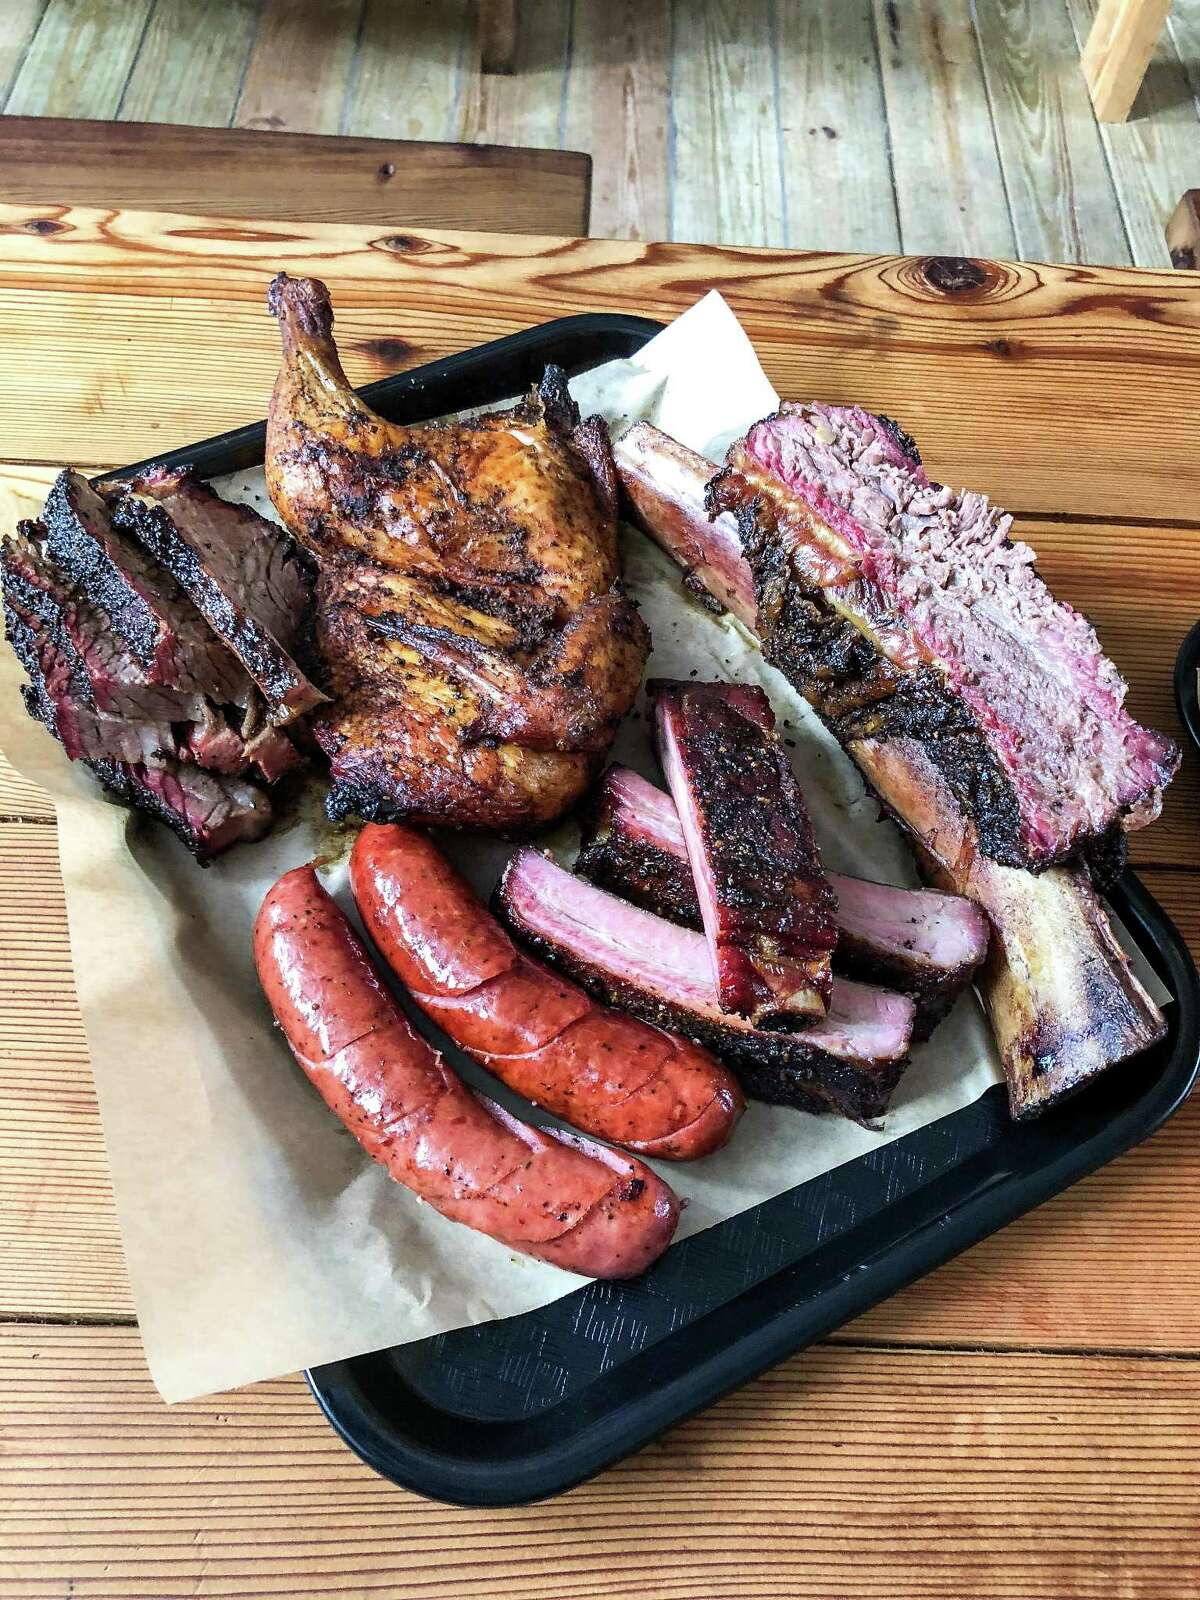 """The """"trinity"""" of brisket, pork ribs and sausage Malekian makes by hand, along with chicken and beef ribs, are on the menu."""